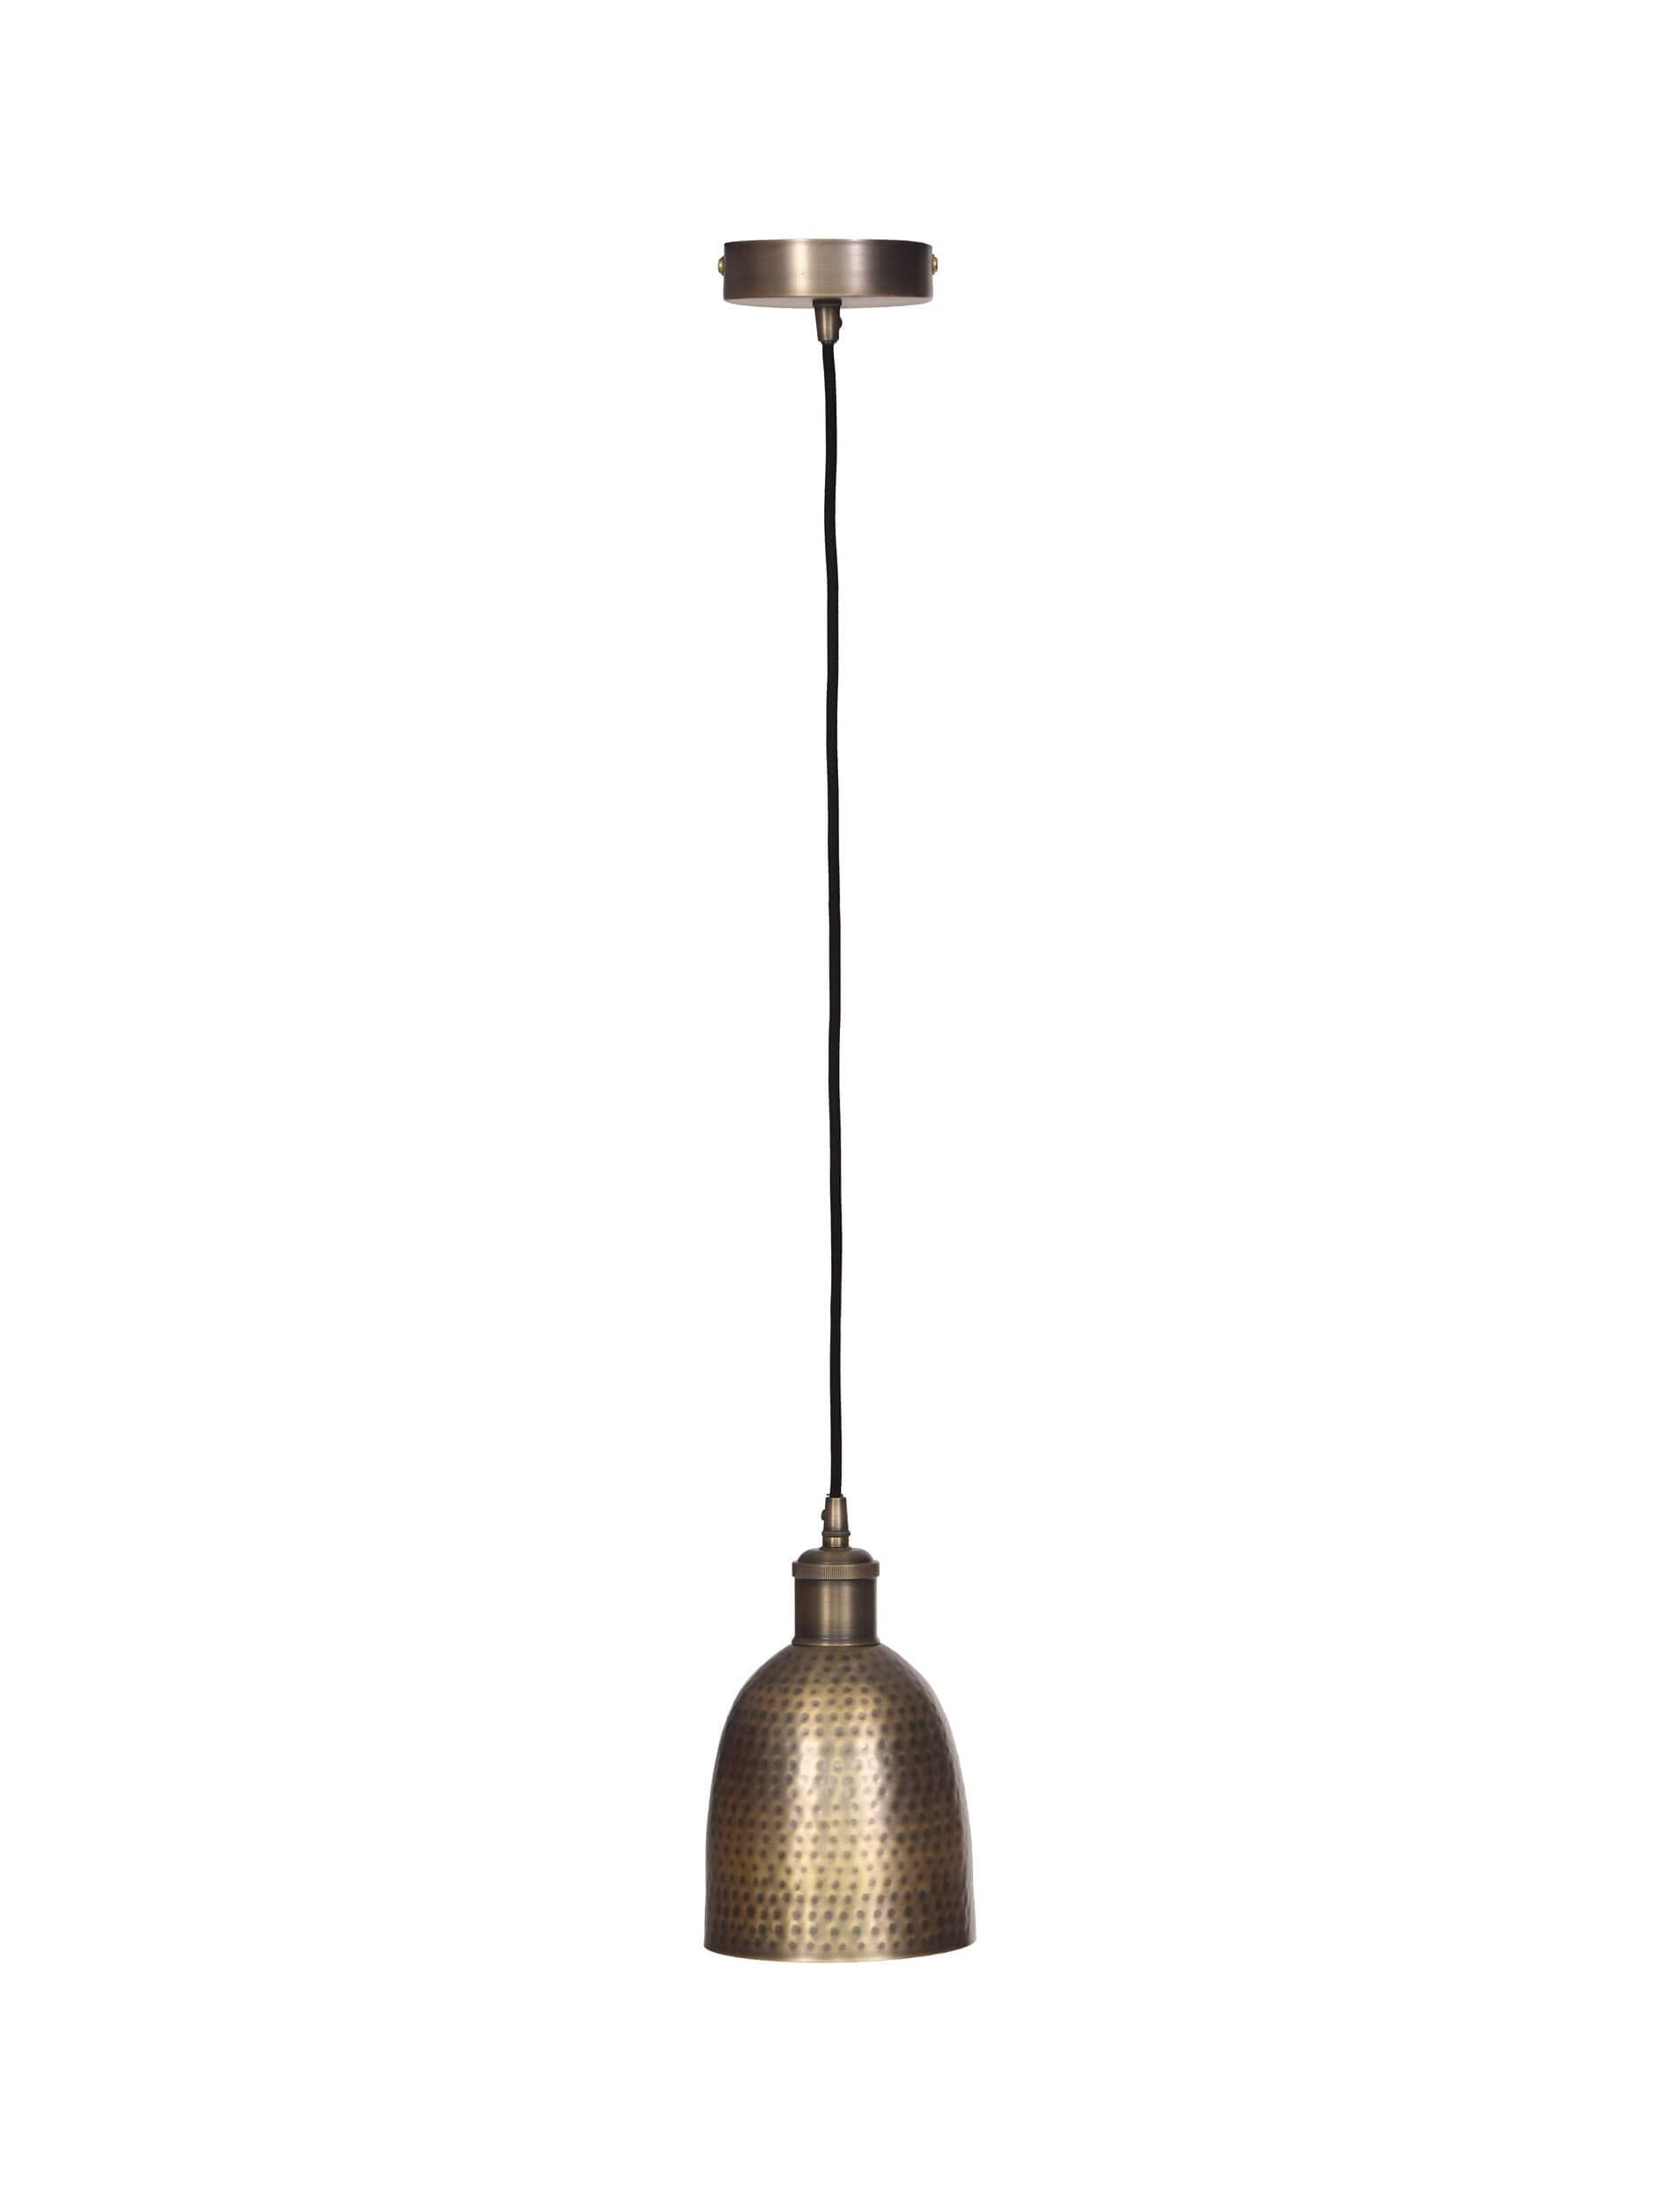 Horus Pendant Light - Antique Brass